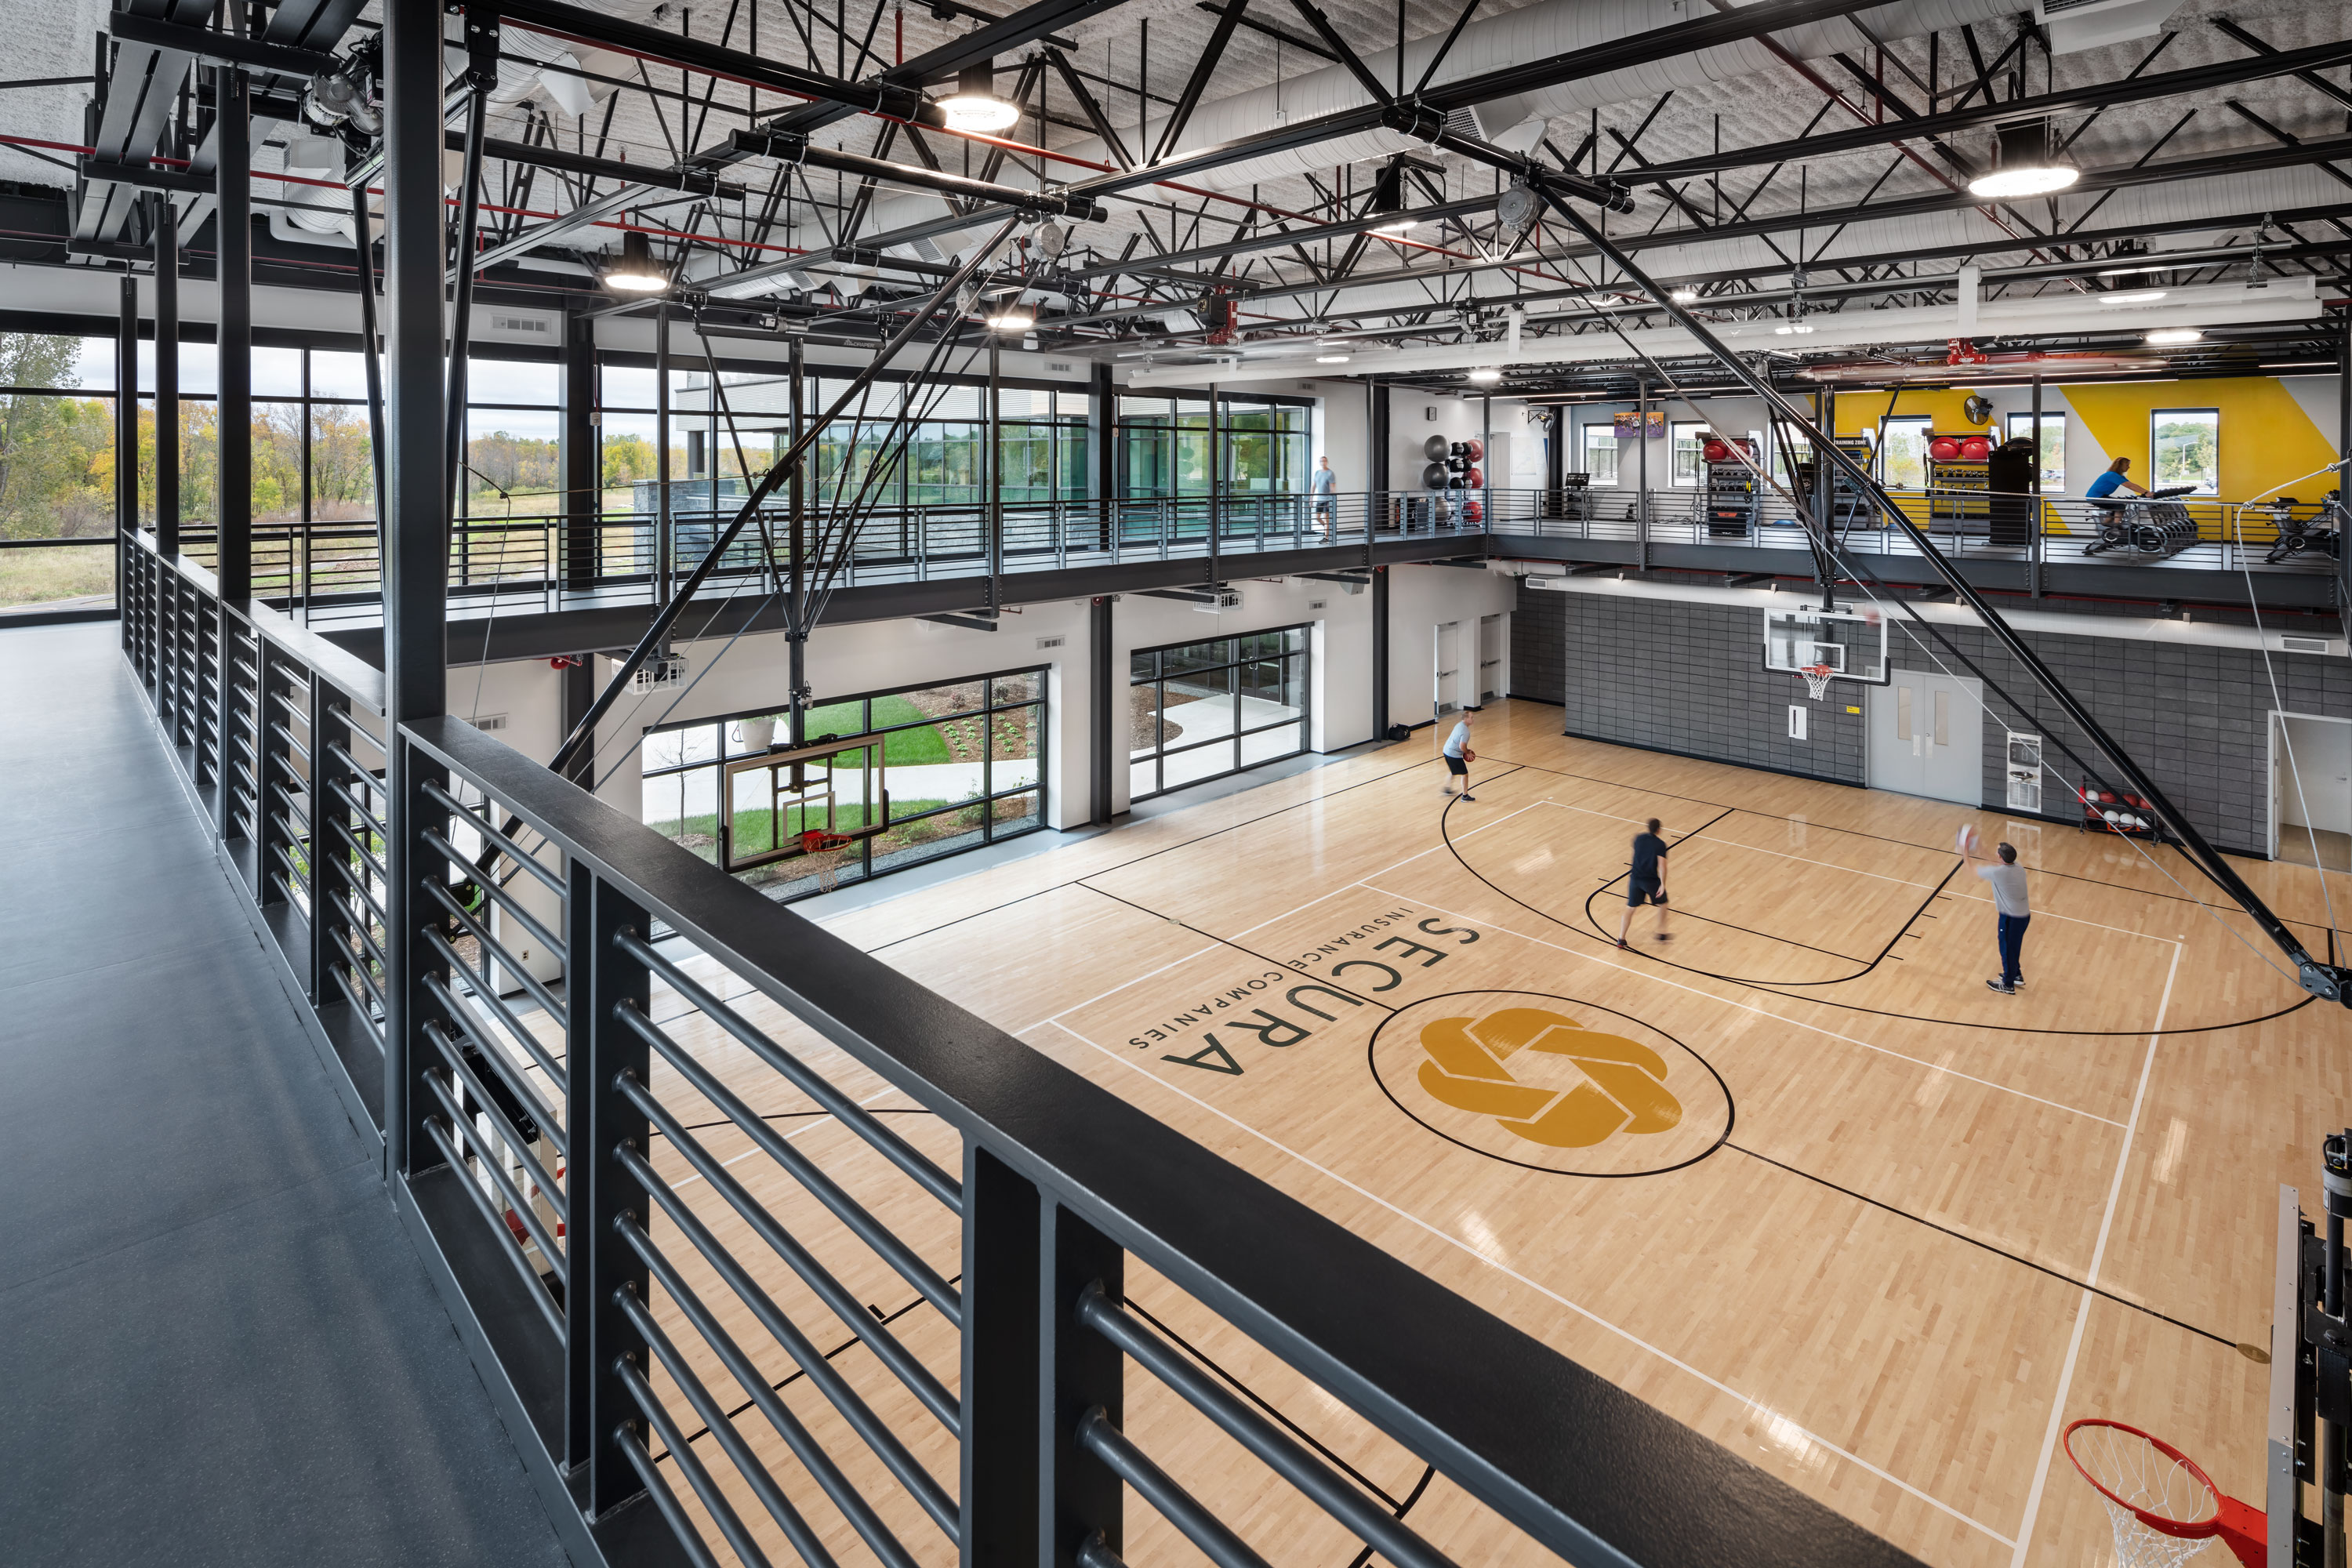 Basketball court & fitness areas of SECURA Insurance Companies' Corporate Headquarters - Building achieved WELL Gold Certification